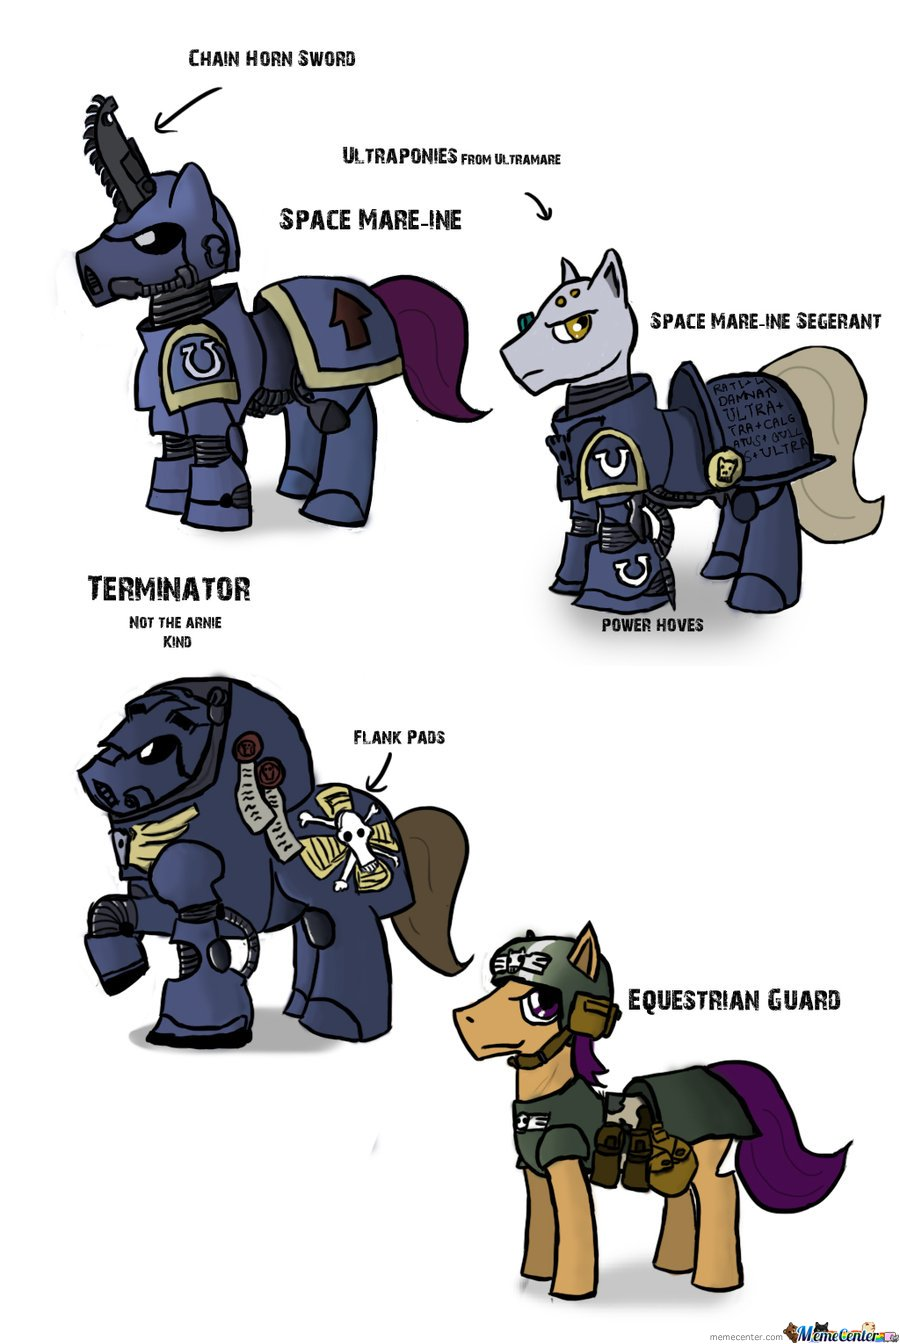 The Ultraponies